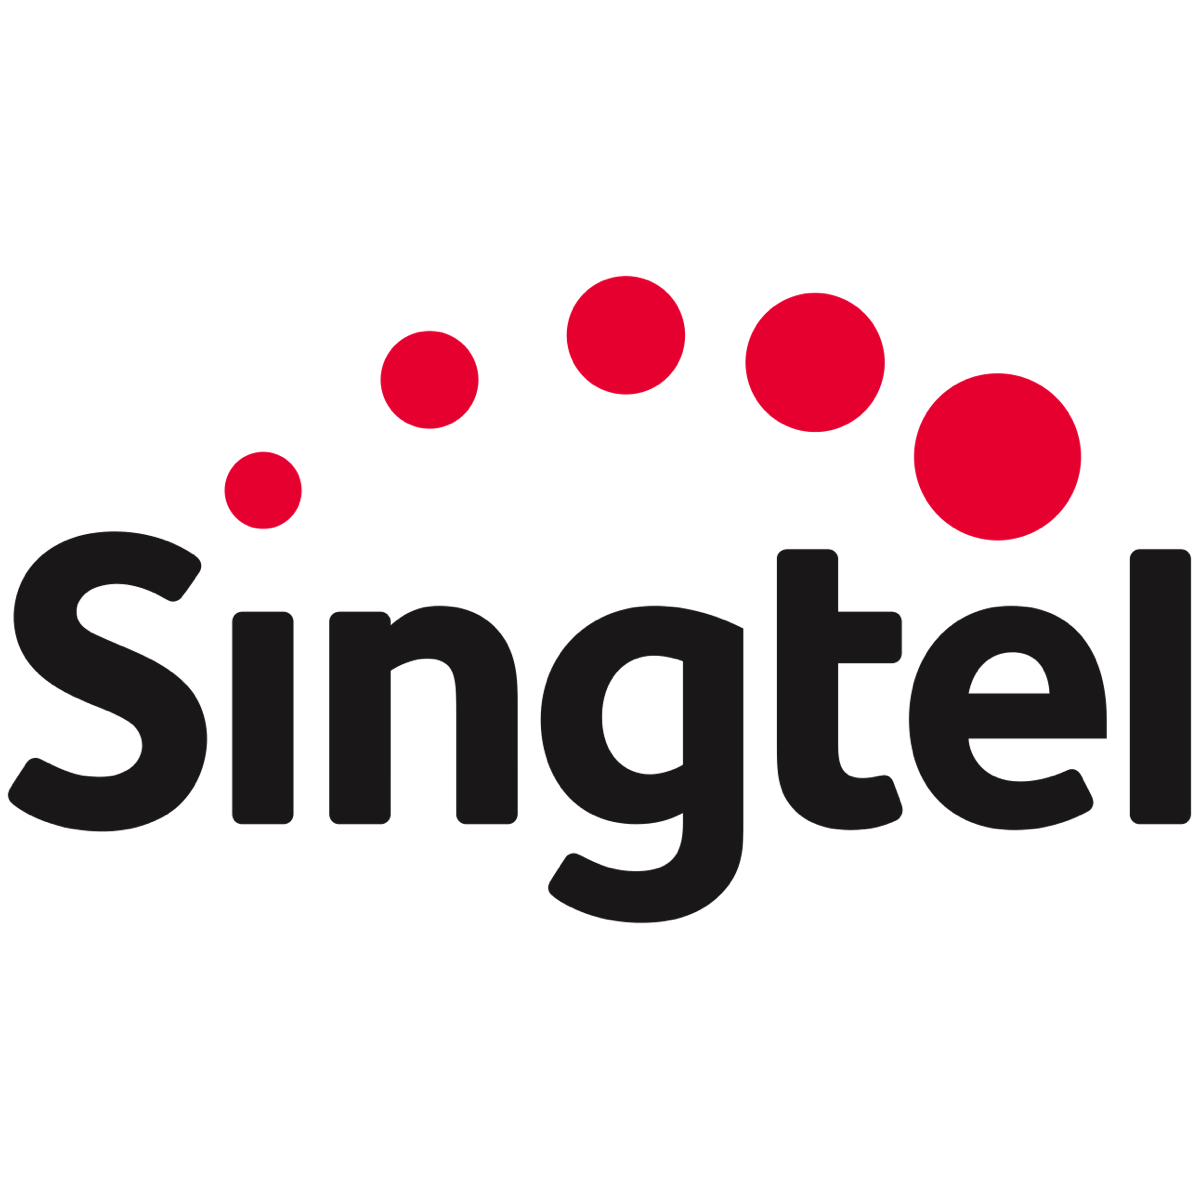 SingTel - CIMB Research 2017-05-18: 4QFY17: All Good But For Airtel